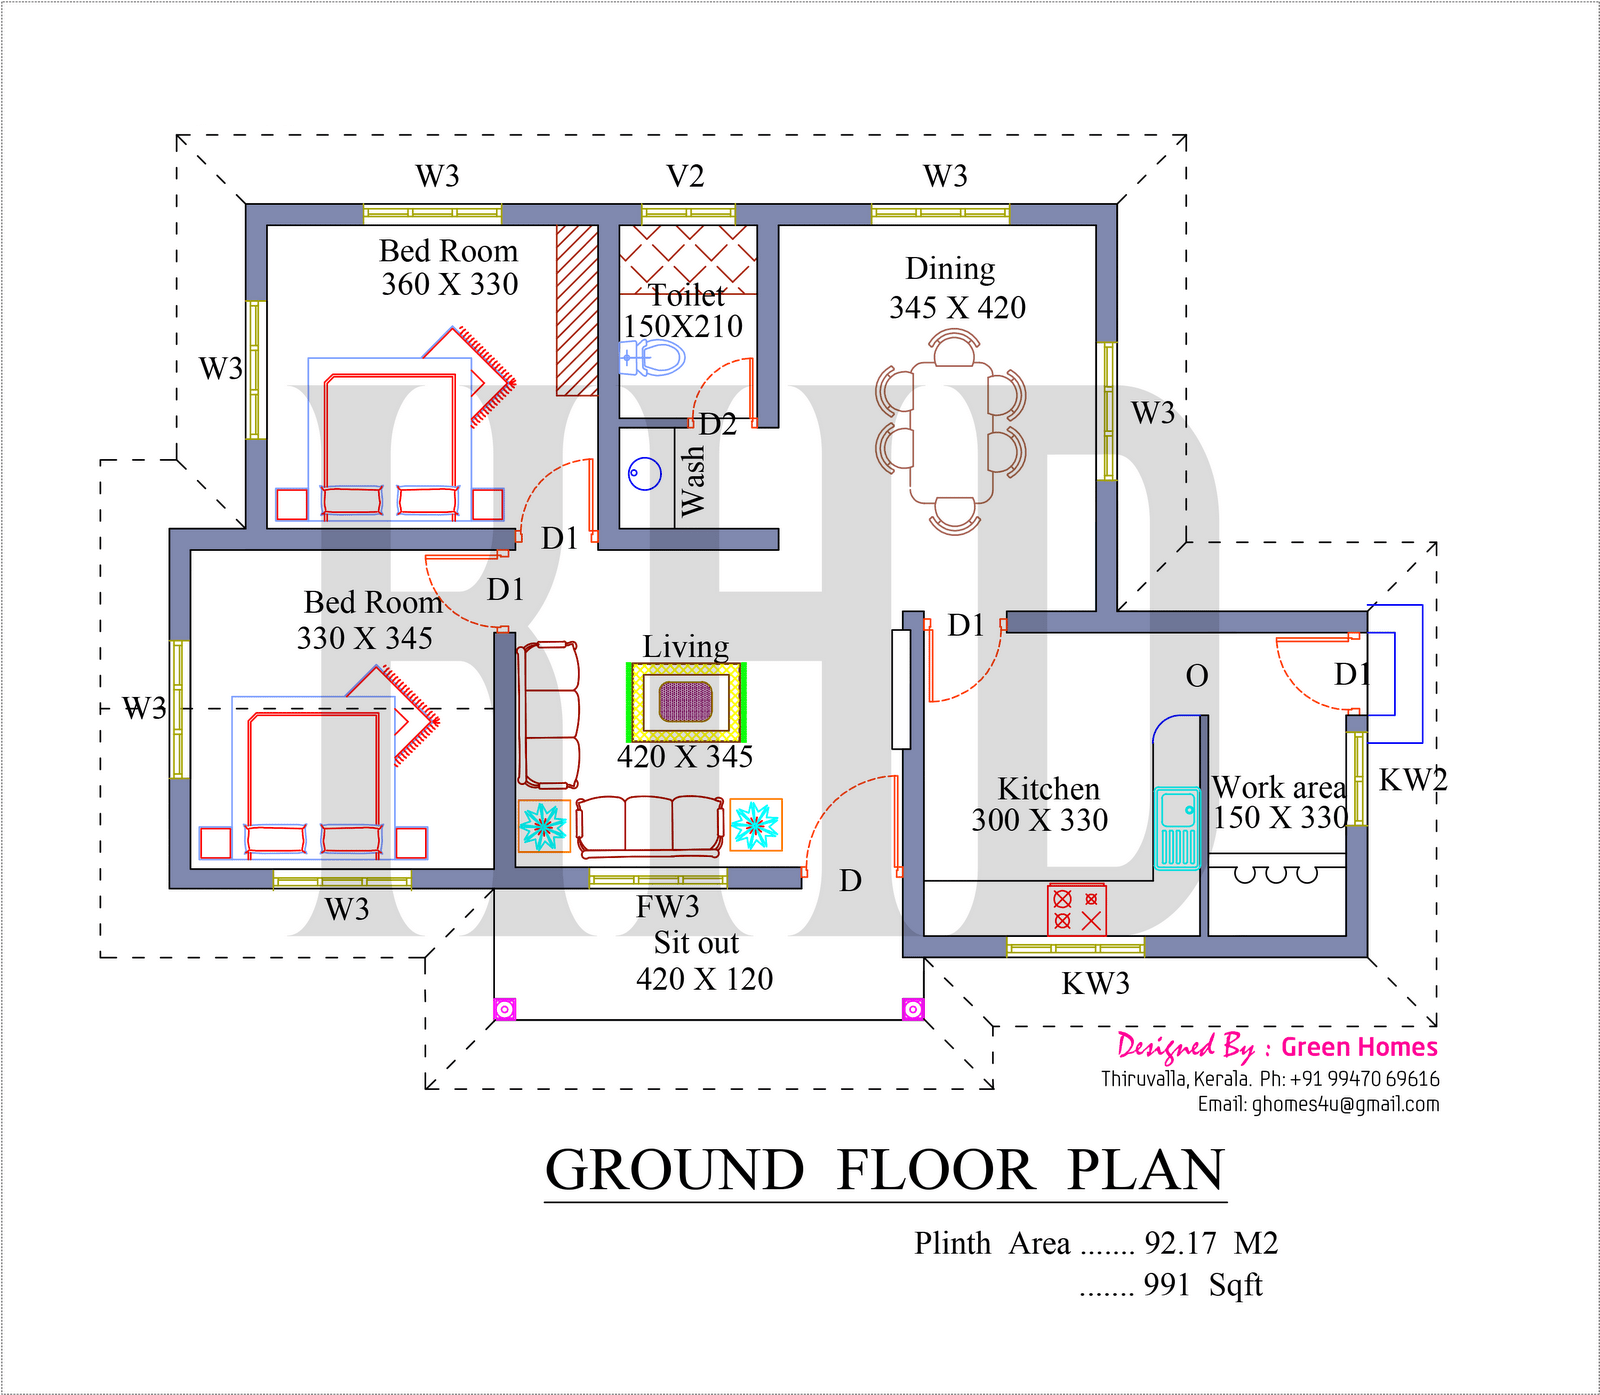 Low cost house in kerala with plan photos 991 sq ft khp for House plans in kerala with estimate